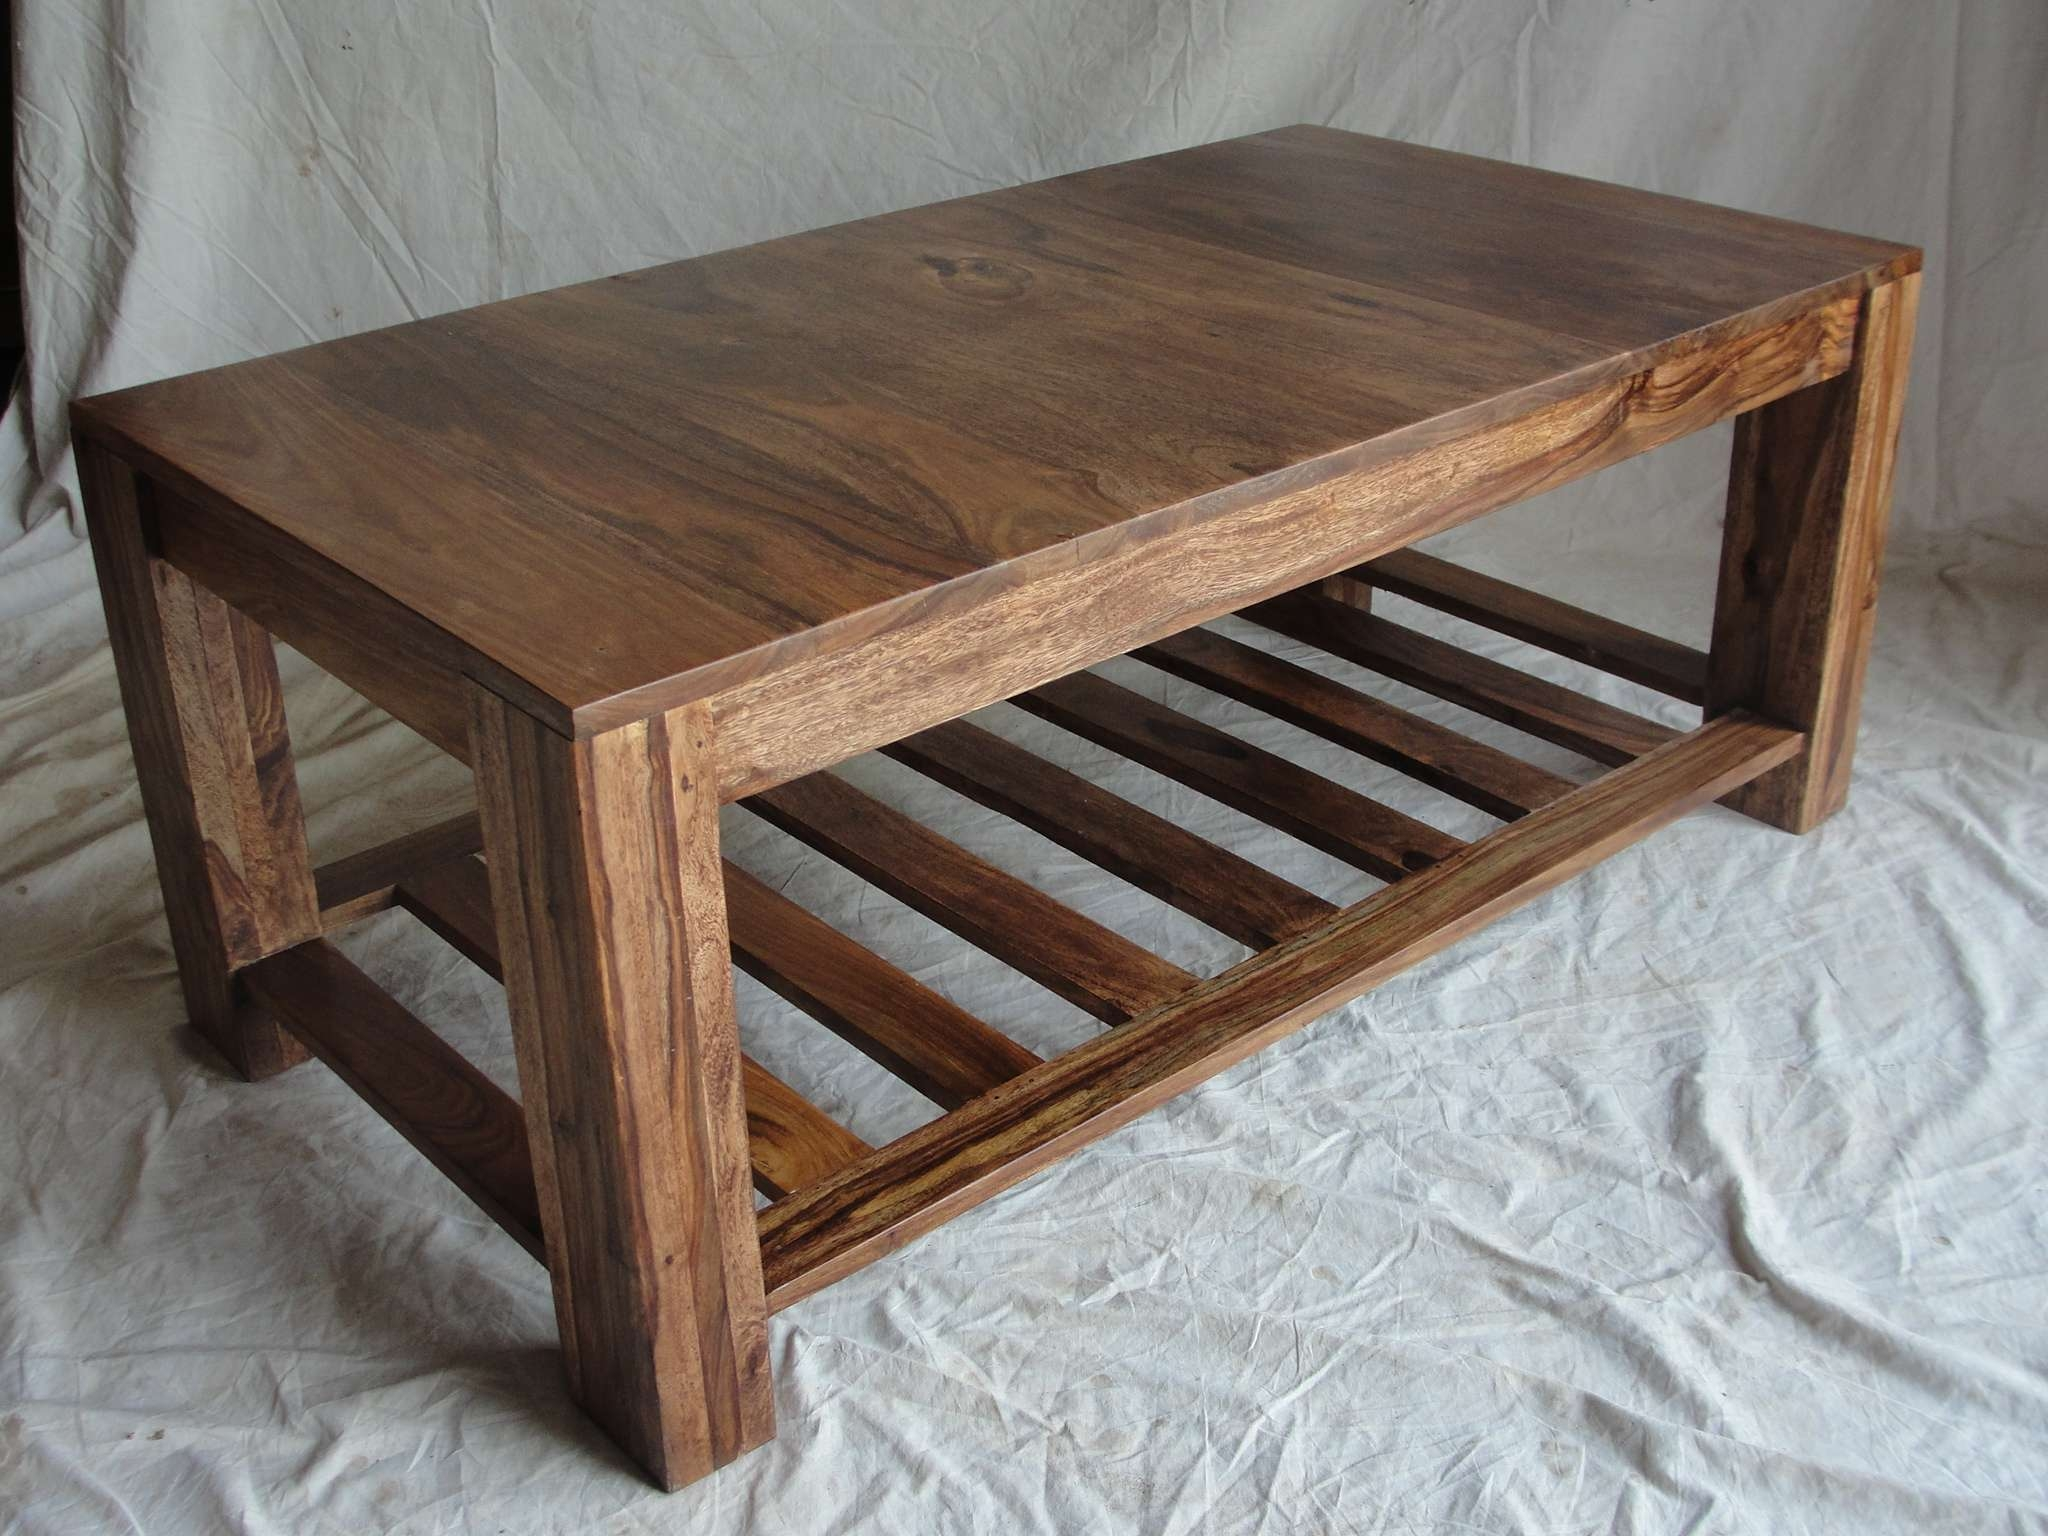 Wooden Coffee Tables Diy – Wooden Coffee Tables And How To Prevent With Regard To Favorite Natural Wood Coffee Tables (View 20 of 20)